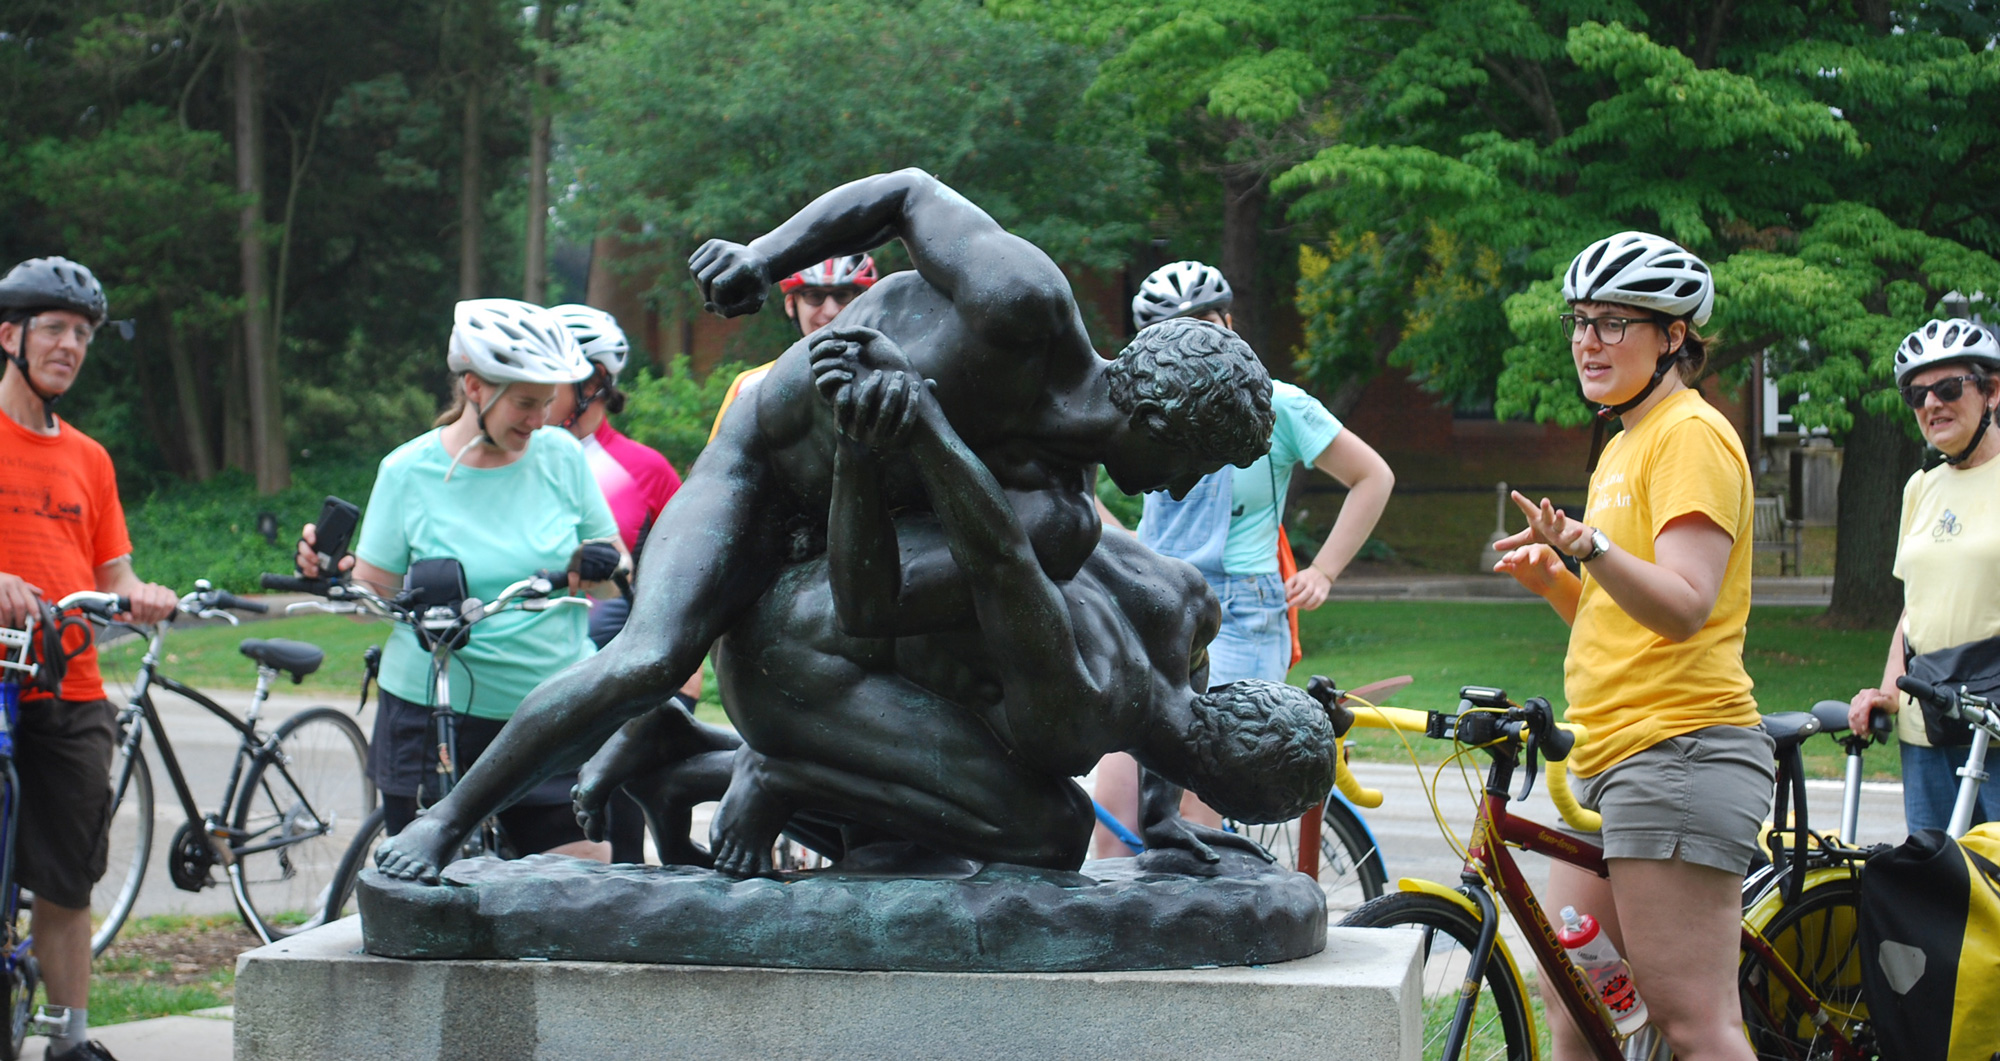 """Cyclists on a public art bike tour make a stop at the bronze """"Wrestlers"""" sculpture in Fairmount Park. The tour leader is gesturing at and talking about the artwork."""